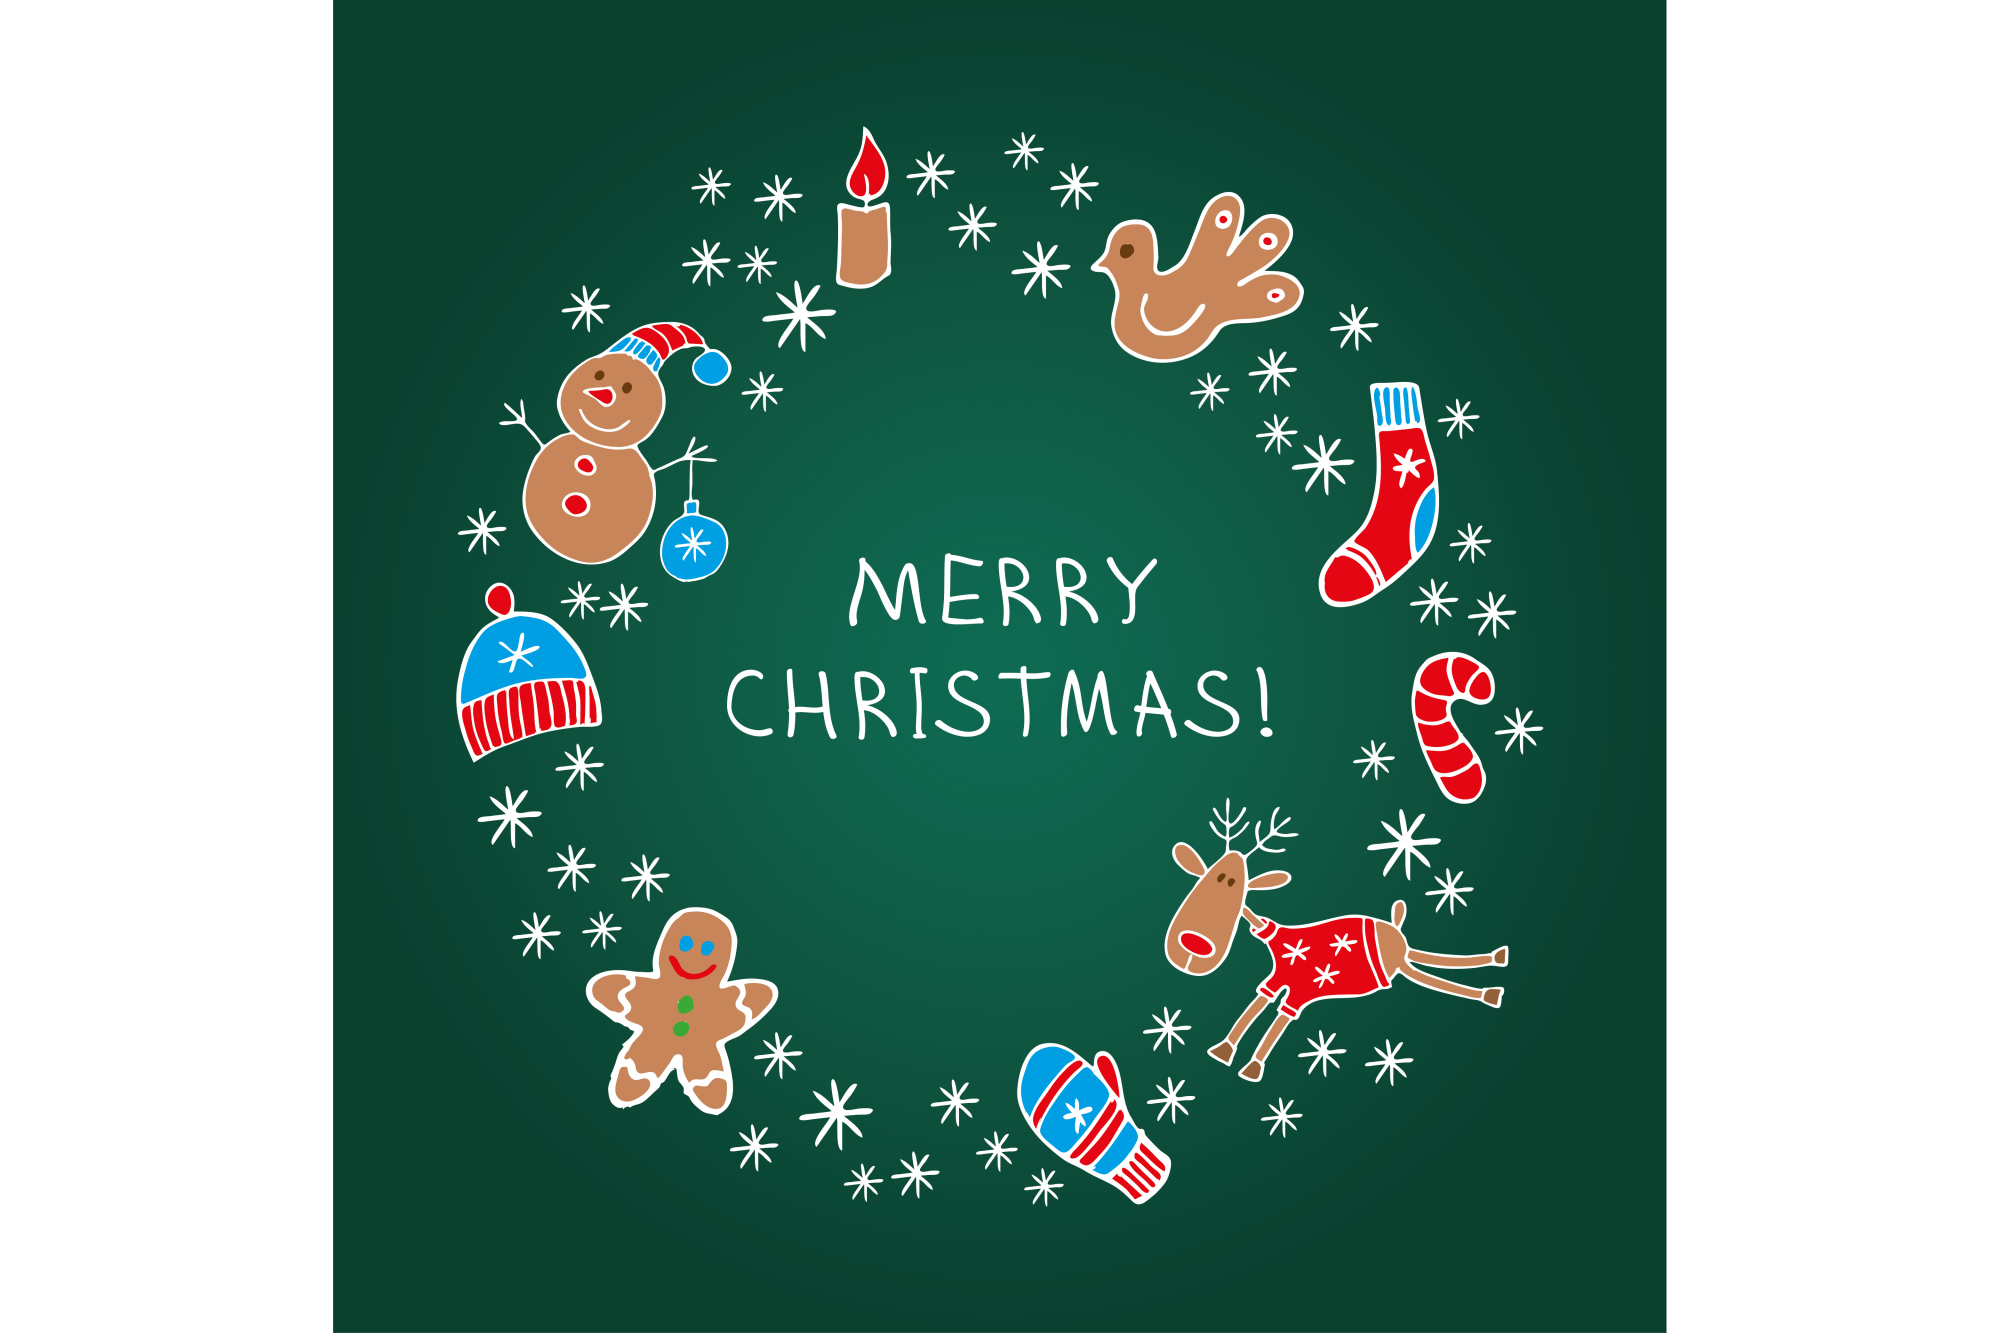 Poster Merry Christmas! Vector illustration. Greeting card. 1 of the jpeg file in resolution 4167*4167 px and 1 file eps8. example image 1